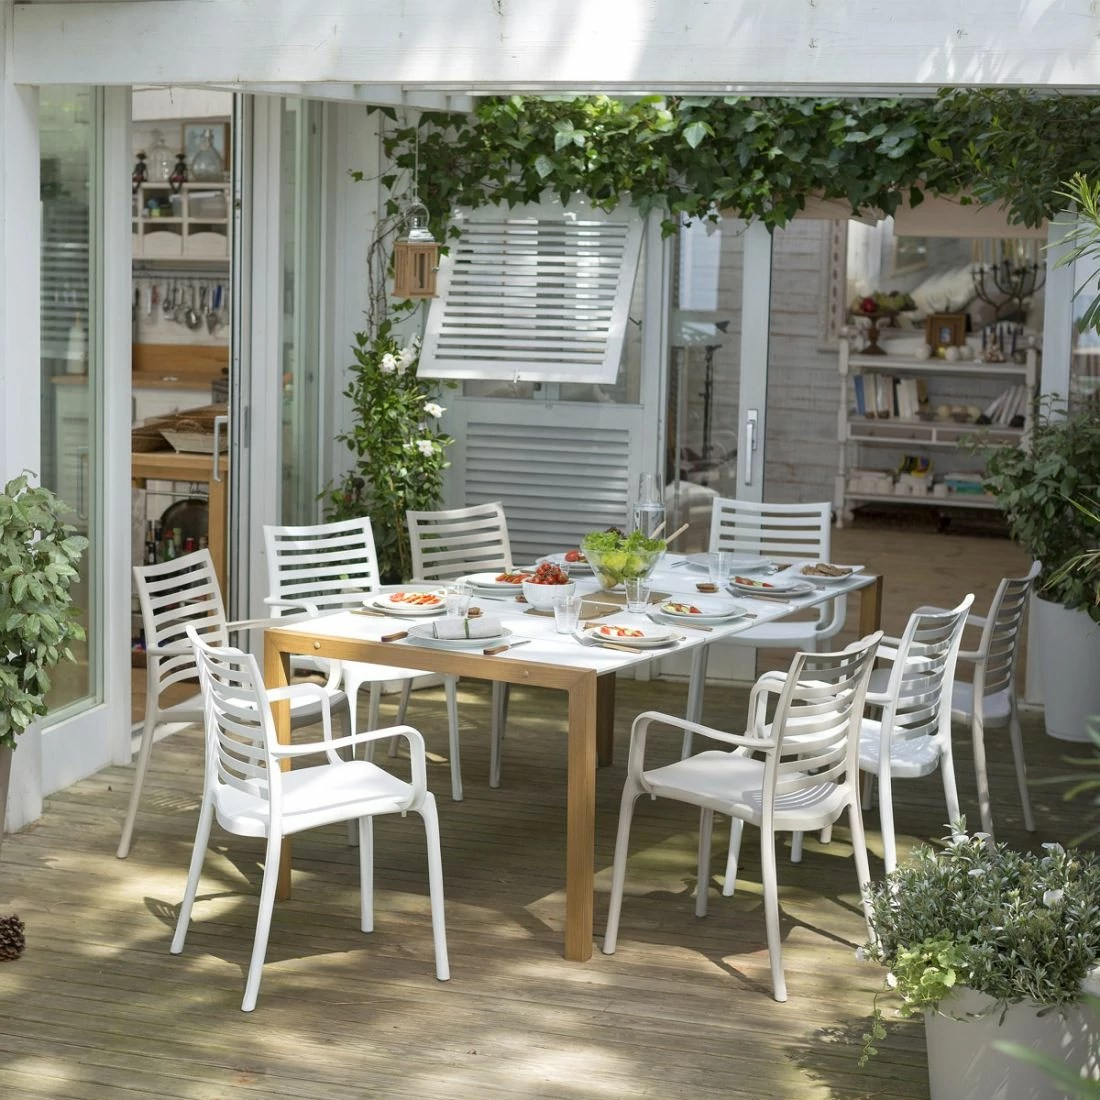 Salon De Jardin Made In France Salon De Jardin De Repas Sunday Copenhague Design Grosfillex